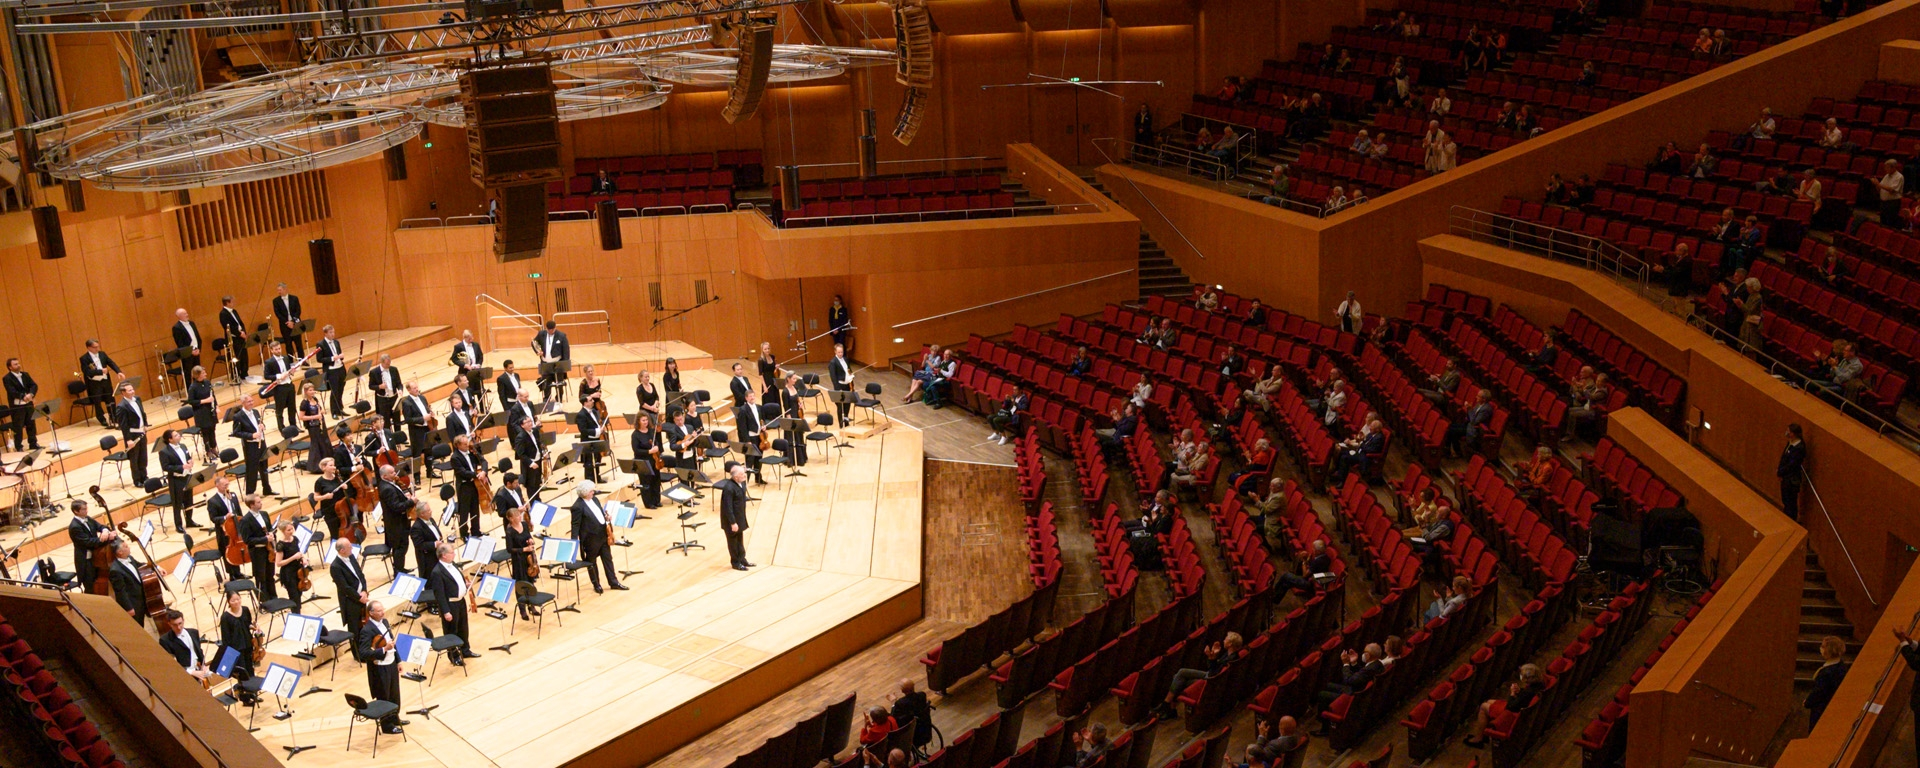 Concerts for 500 to Continue in the Philharmonic Hall